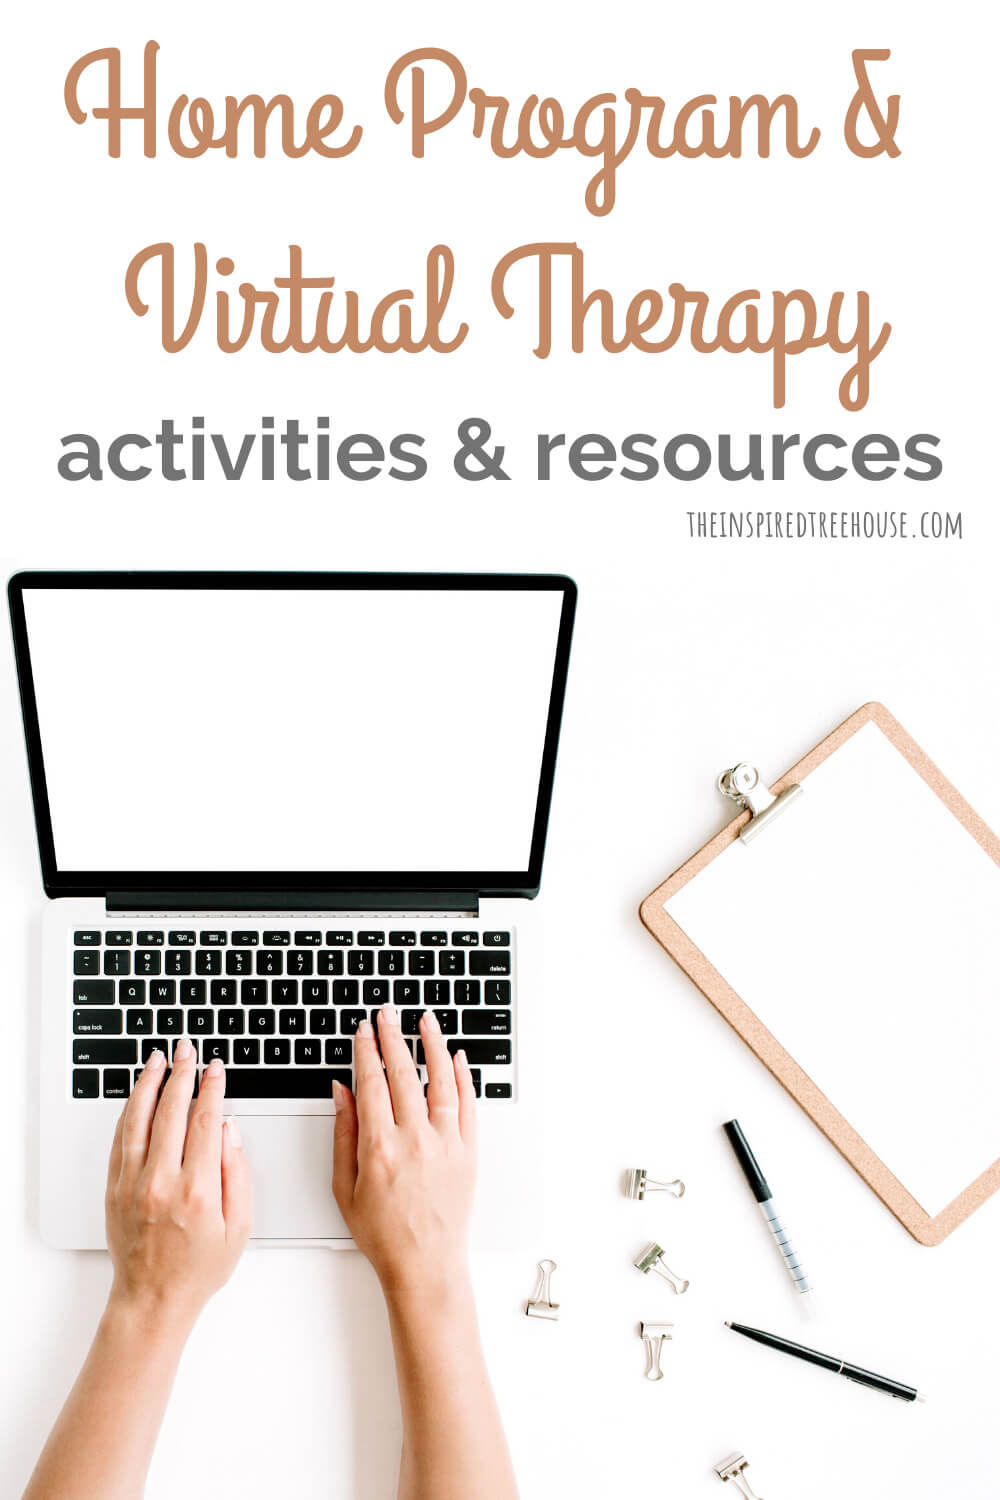 Hands on computer for virtual therapy session